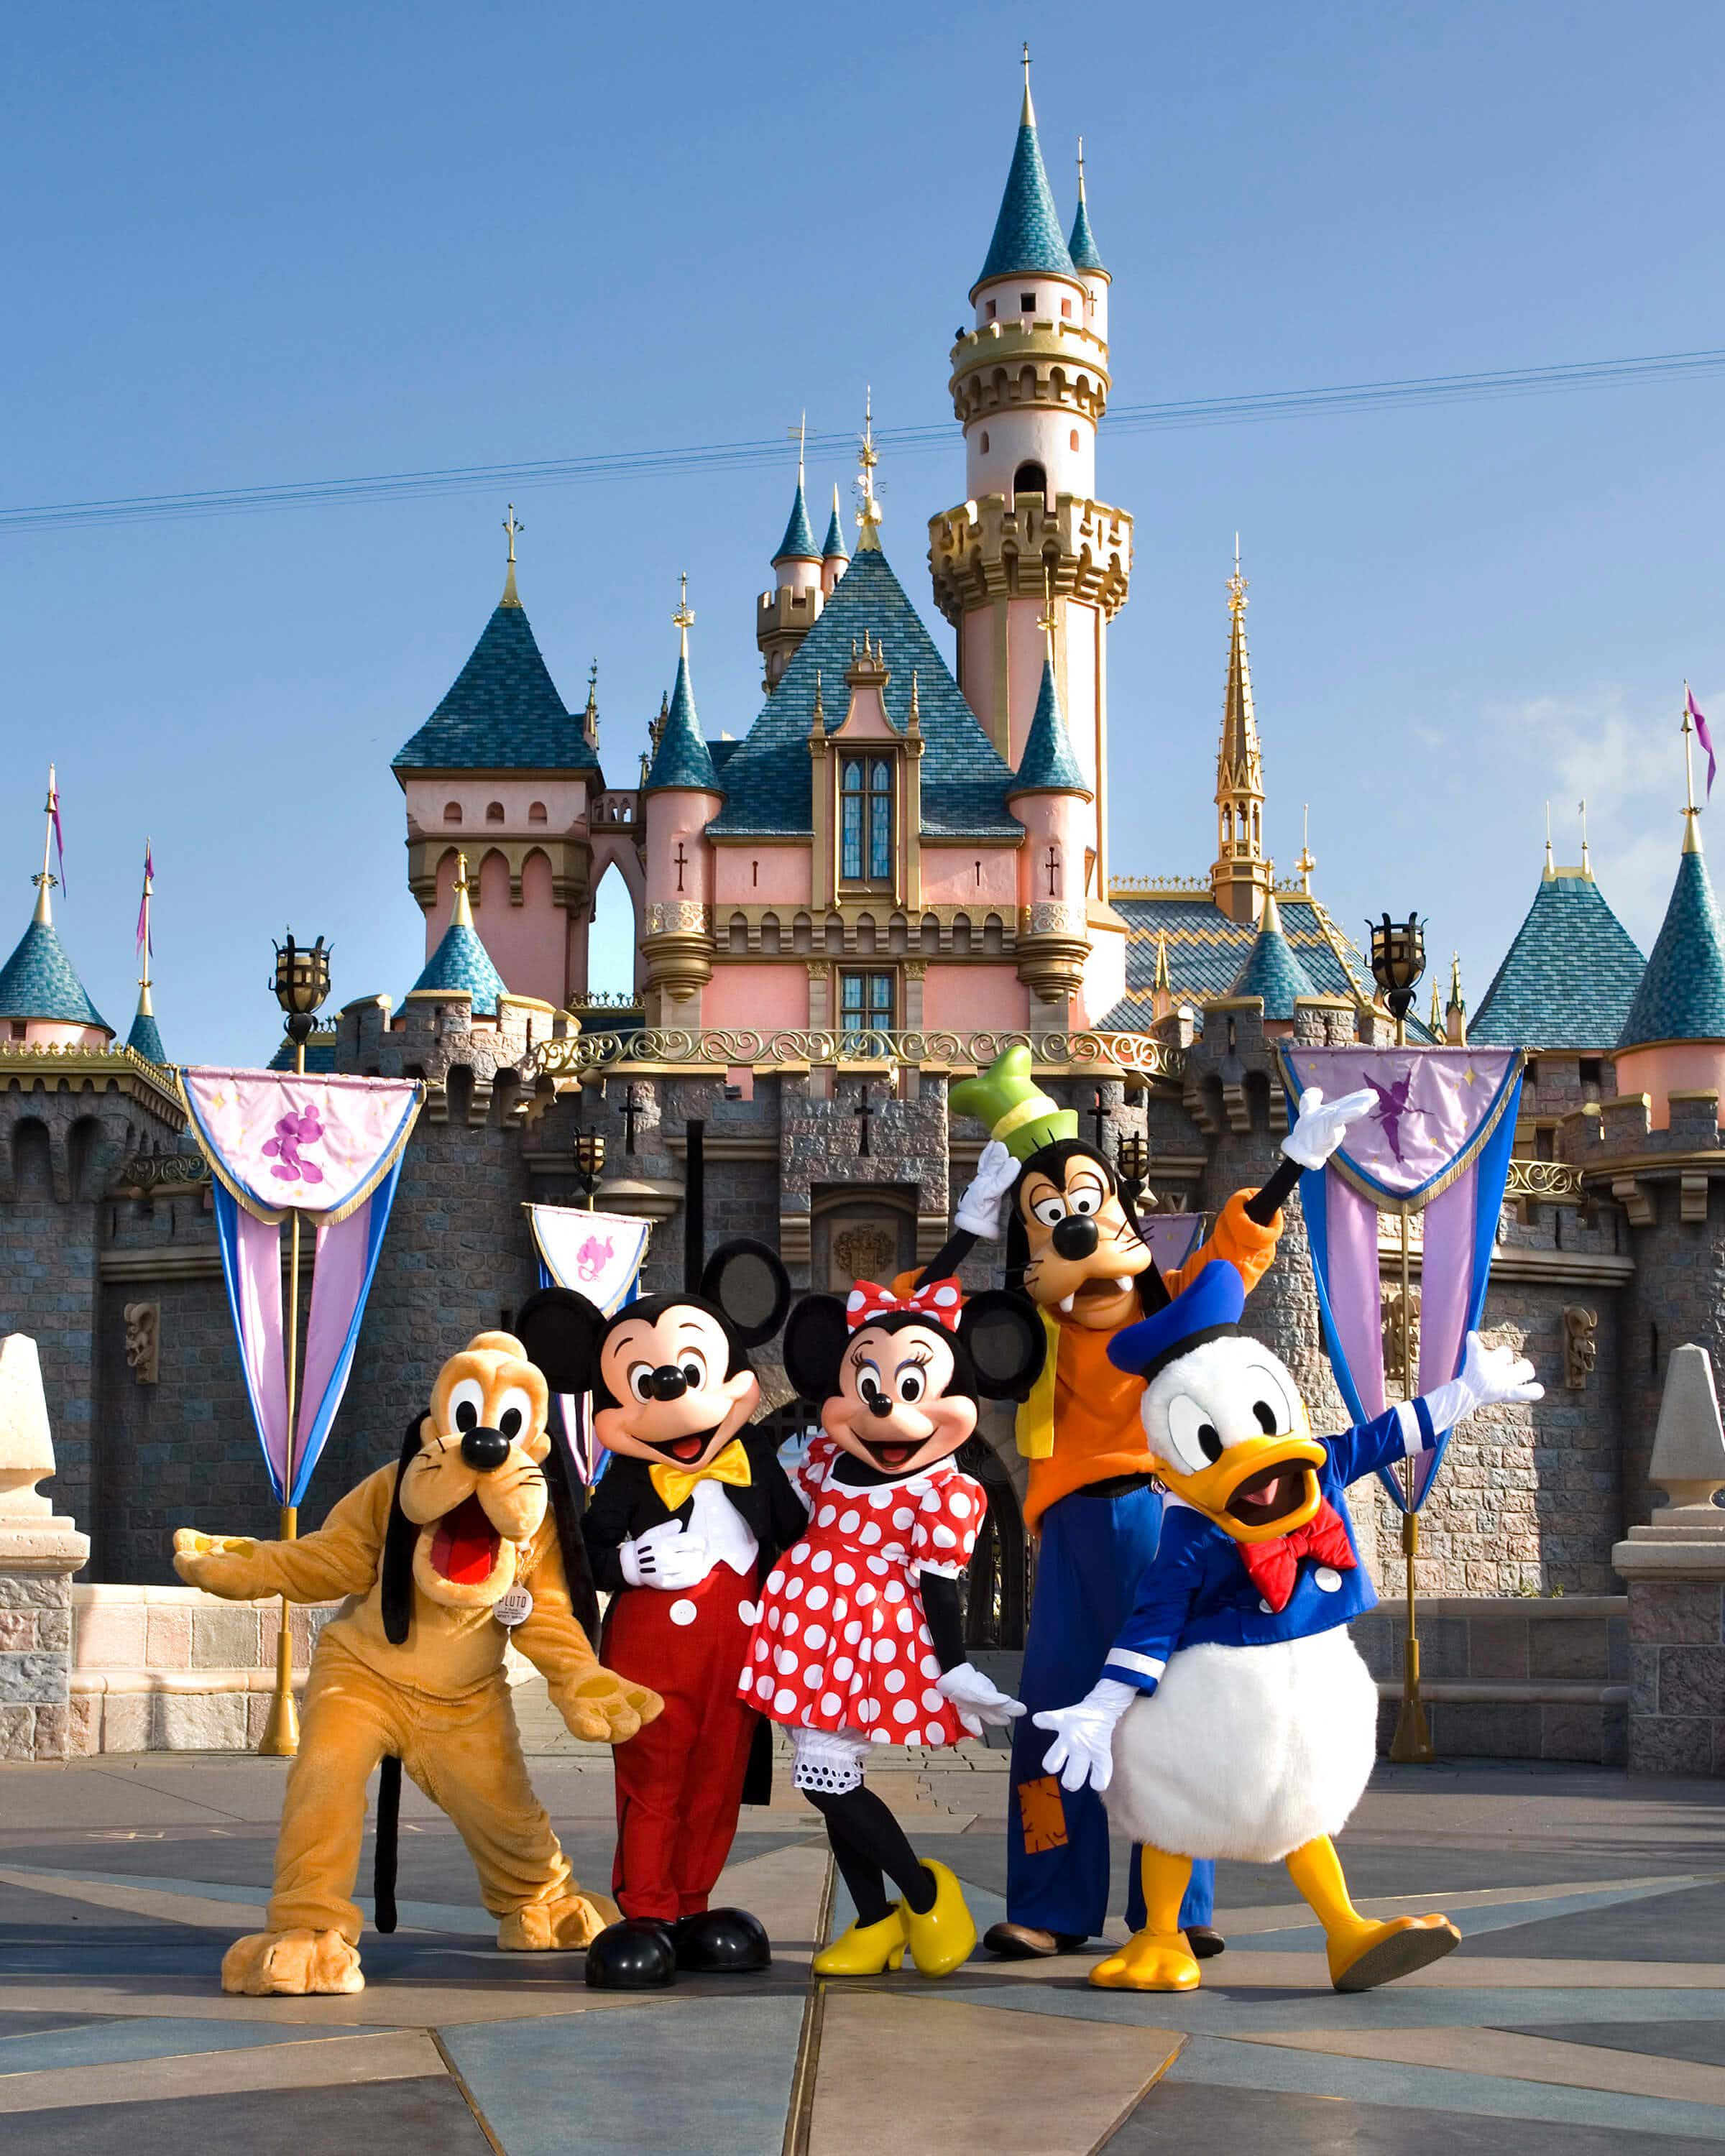 Disneyland is getting rid of its outdoor seating